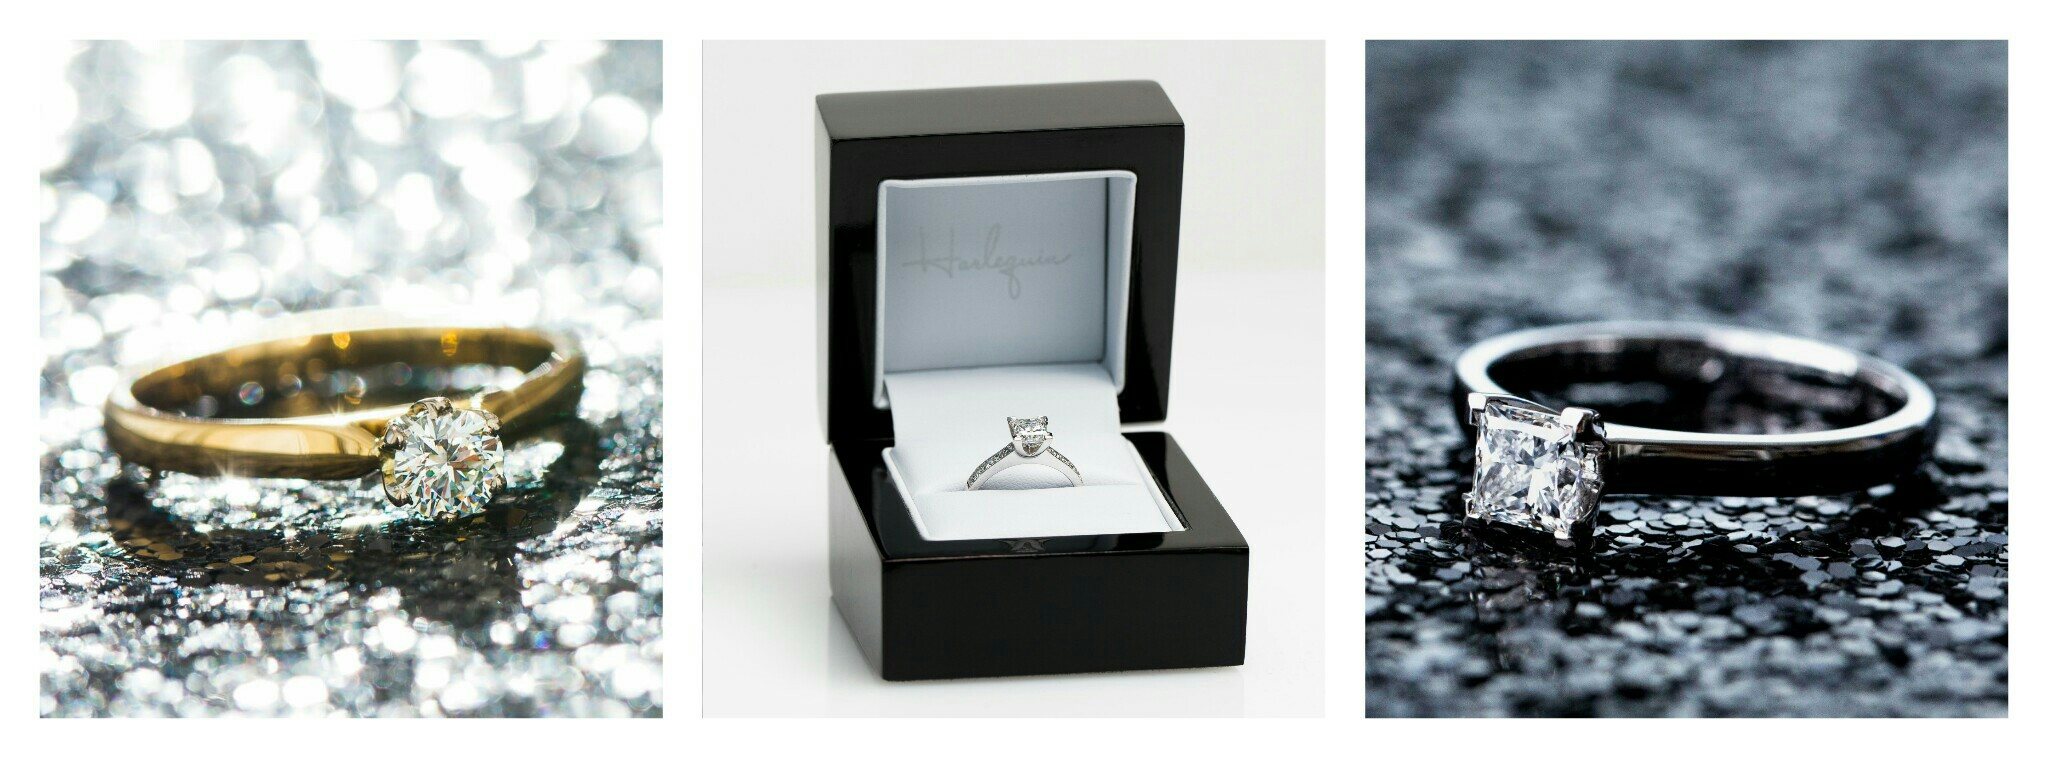 5 questions to ask when choosing an engagement ring - Harlequin Jewellers Canberra